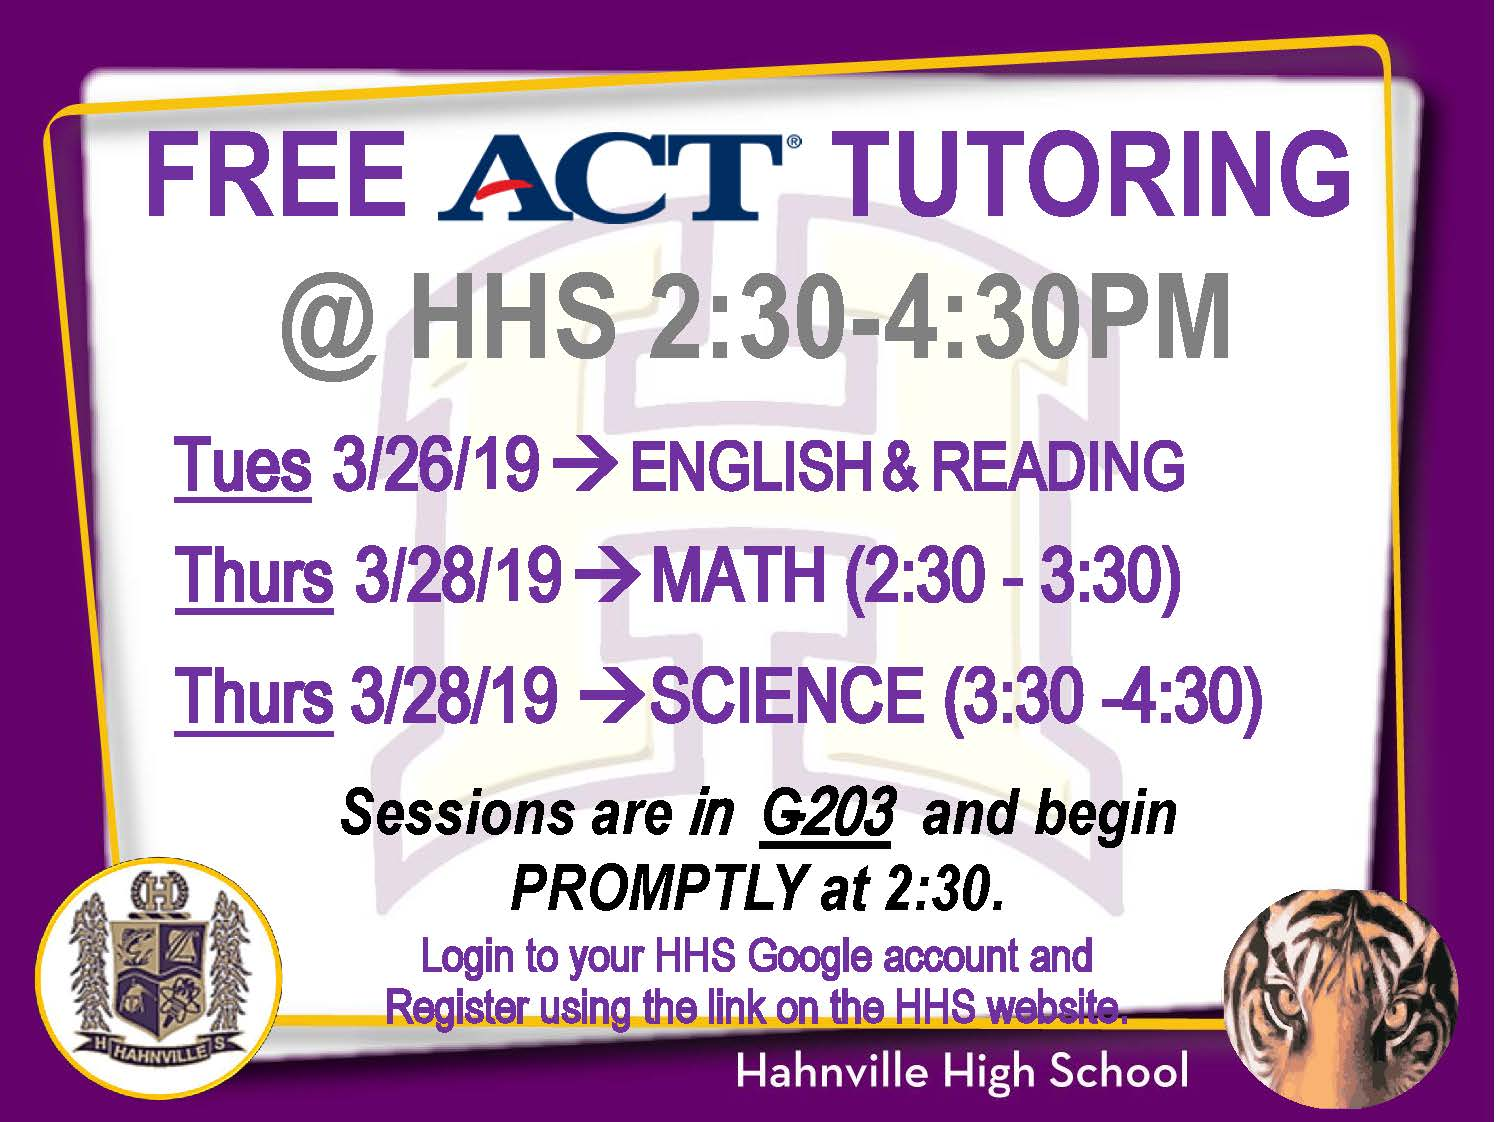 Free ACT Tutoring to Be Offered